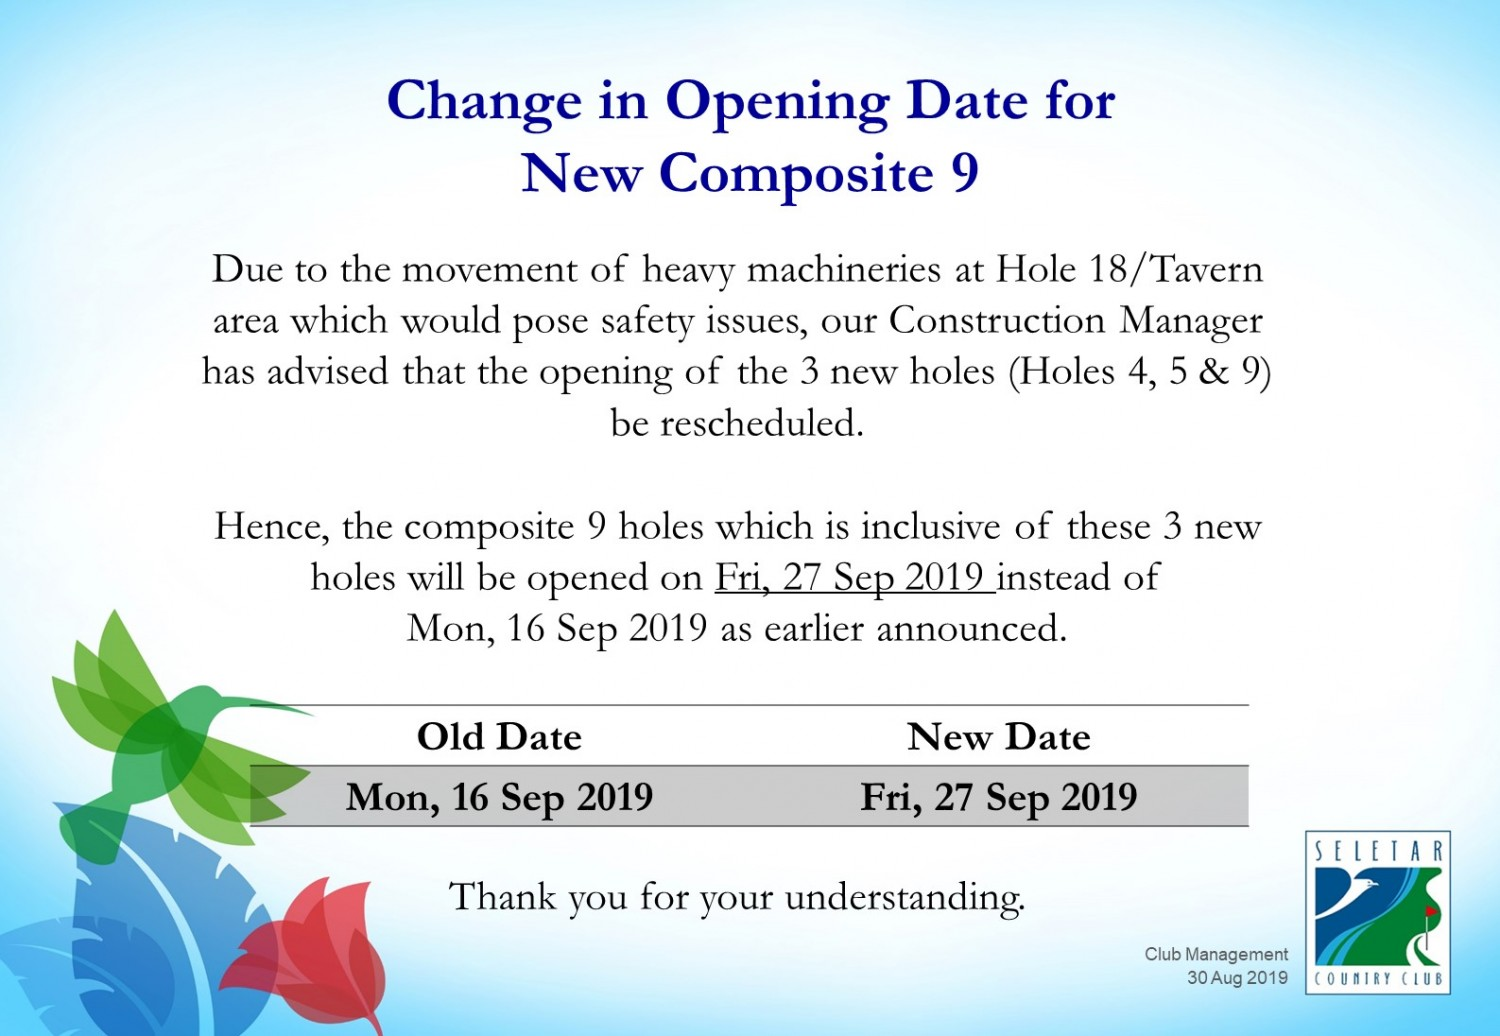 Change in Composite 9 opening date